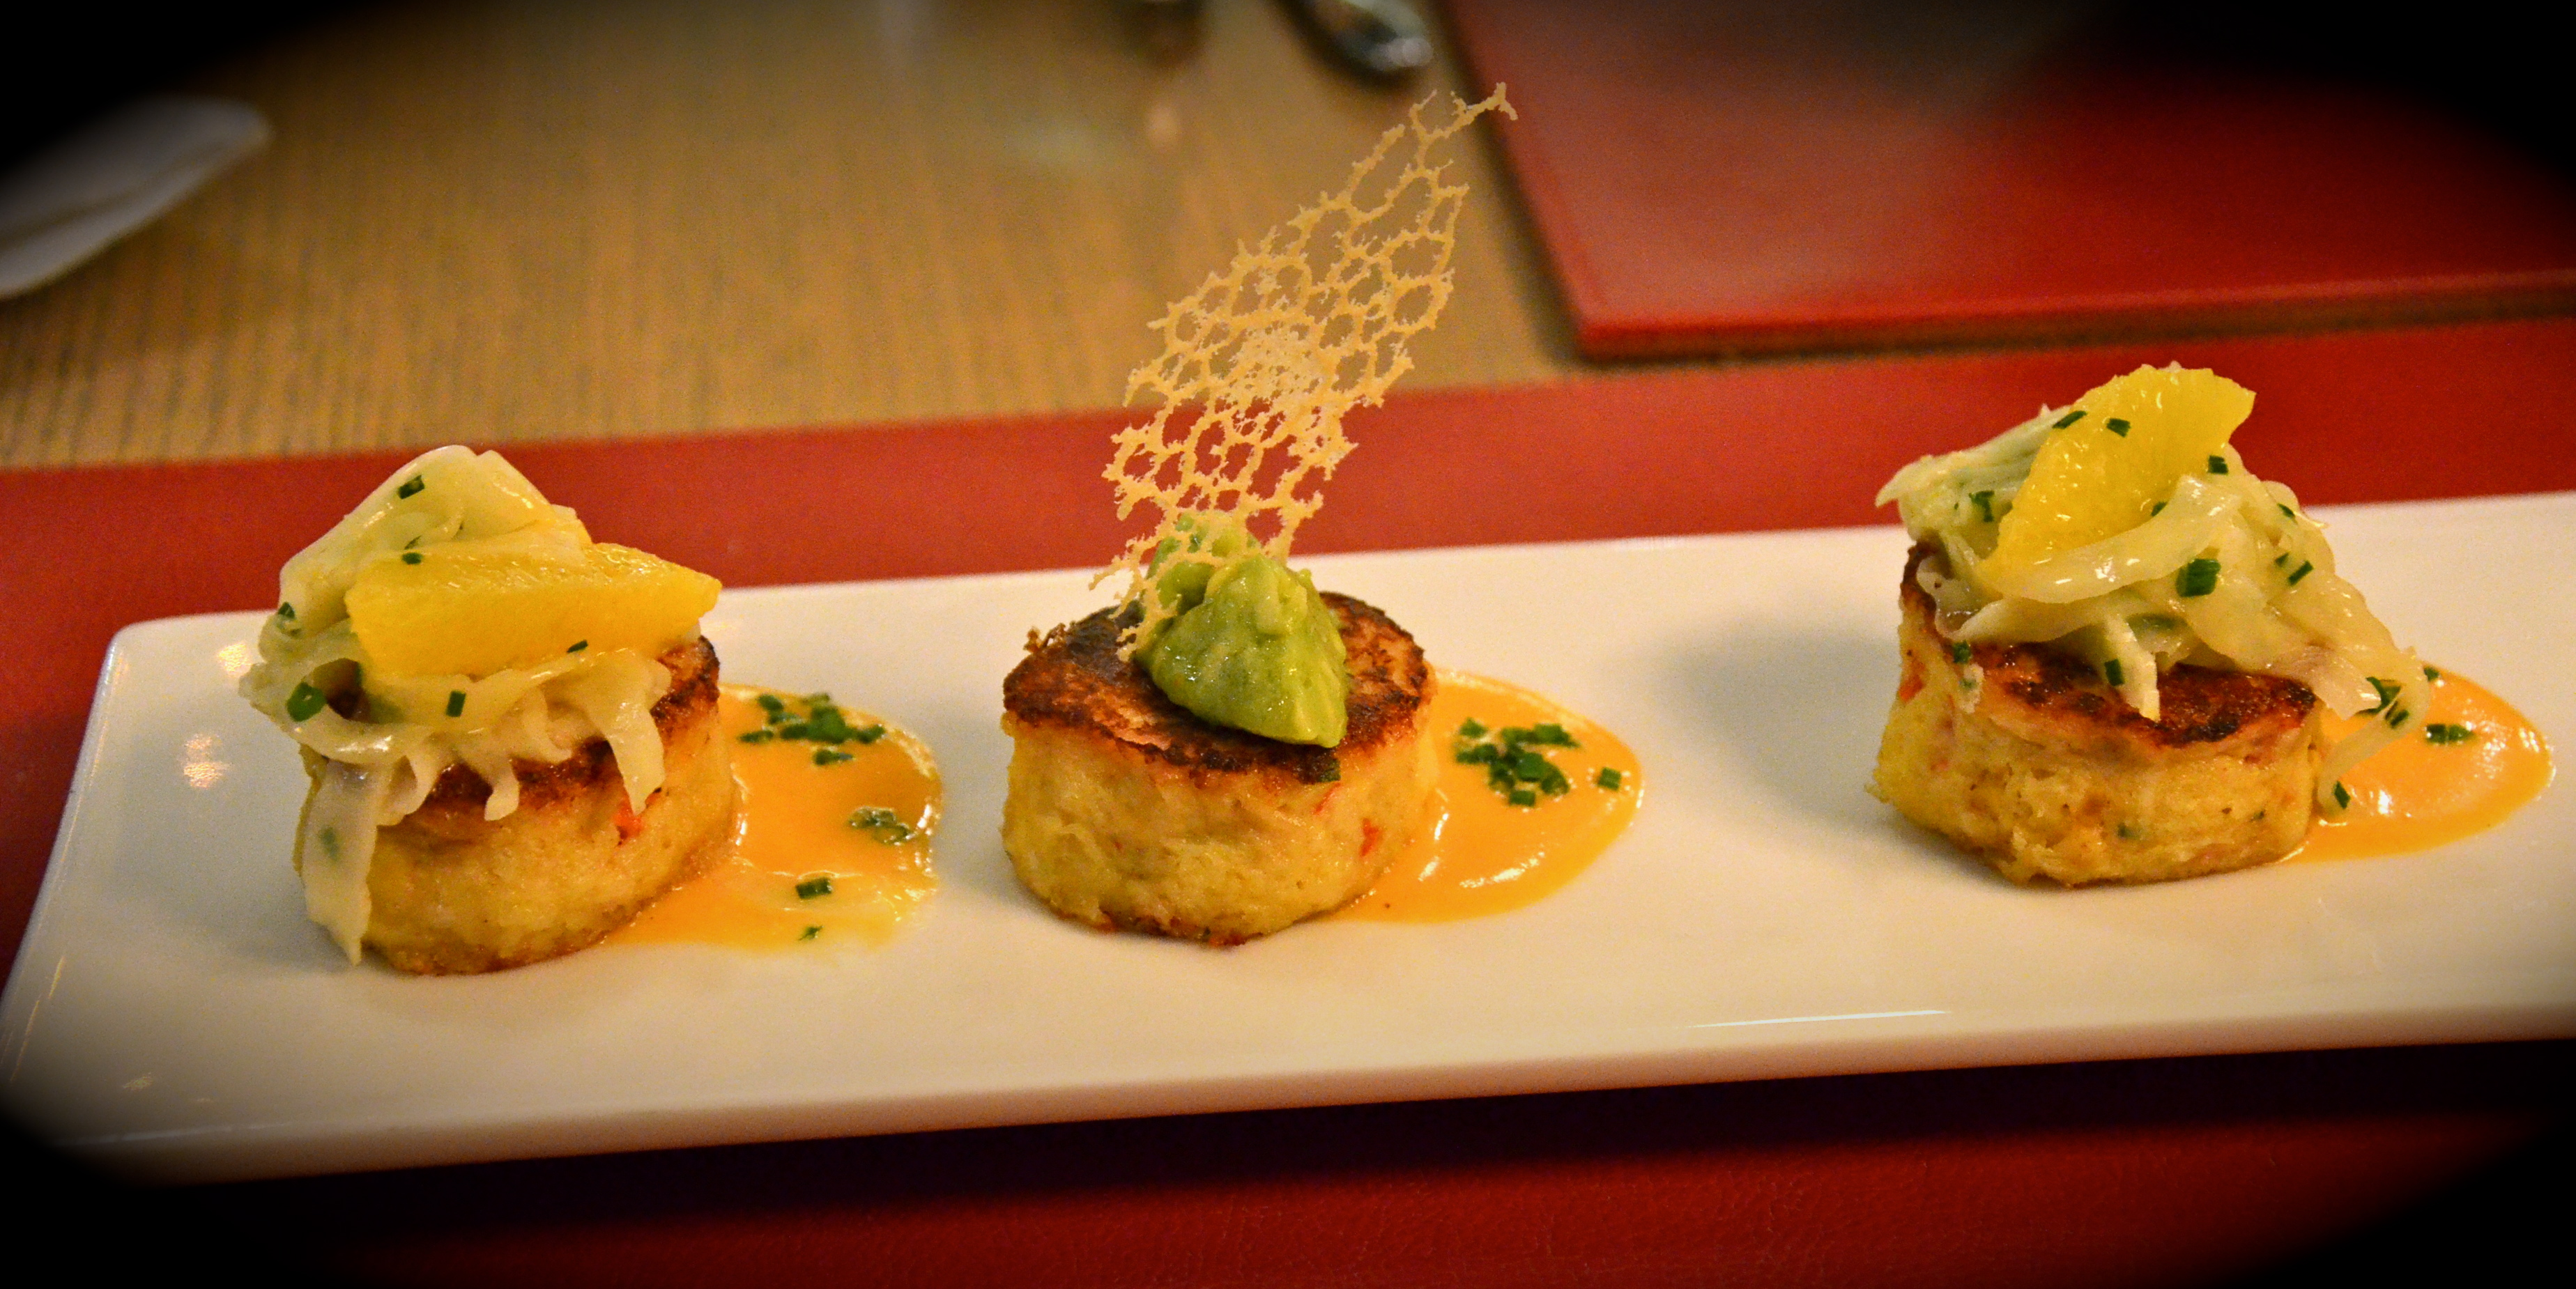 Pan Seared Crab Cake Aed 75 Red Pepper Beurre Blanc